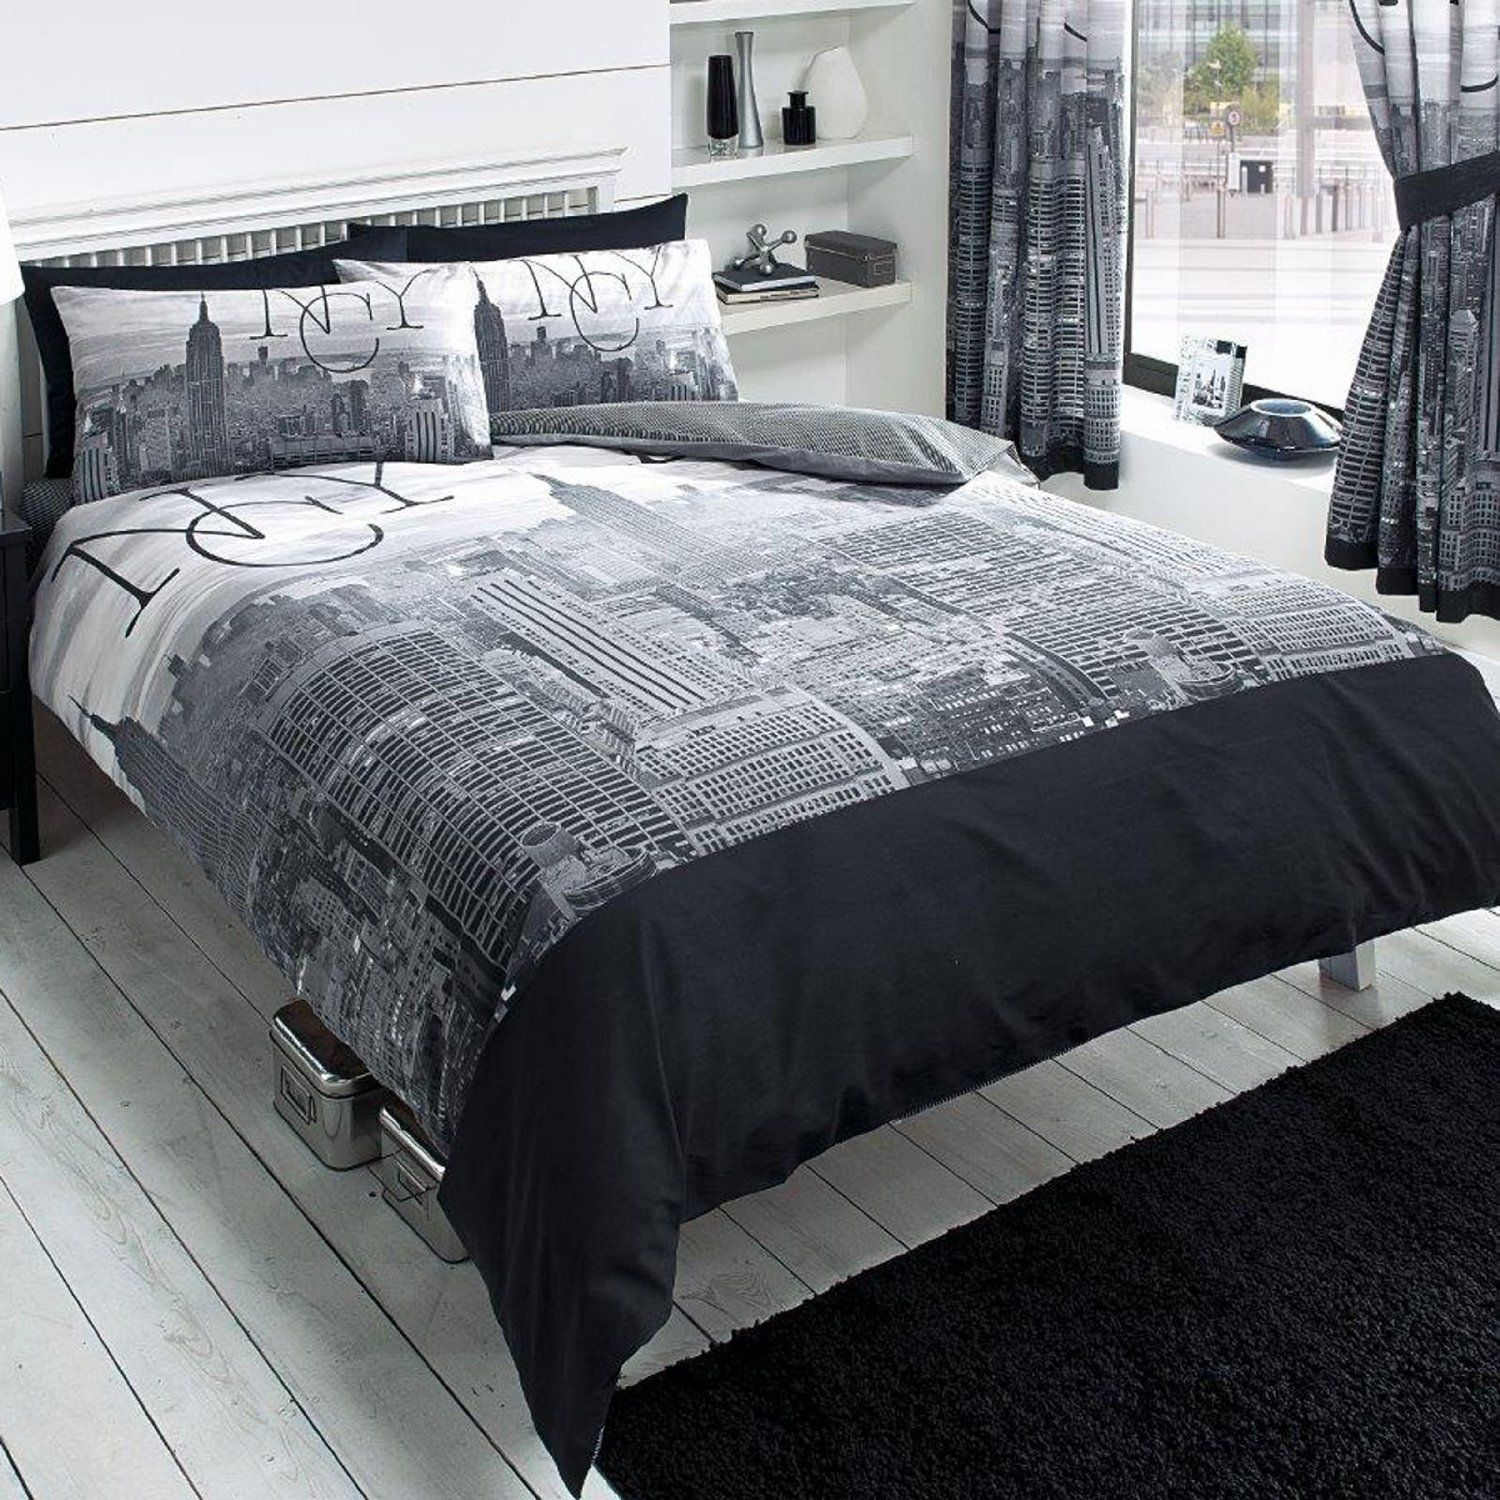 Total Fab New York City Skyline Bedding & NYC Themed Bedroom Ideas